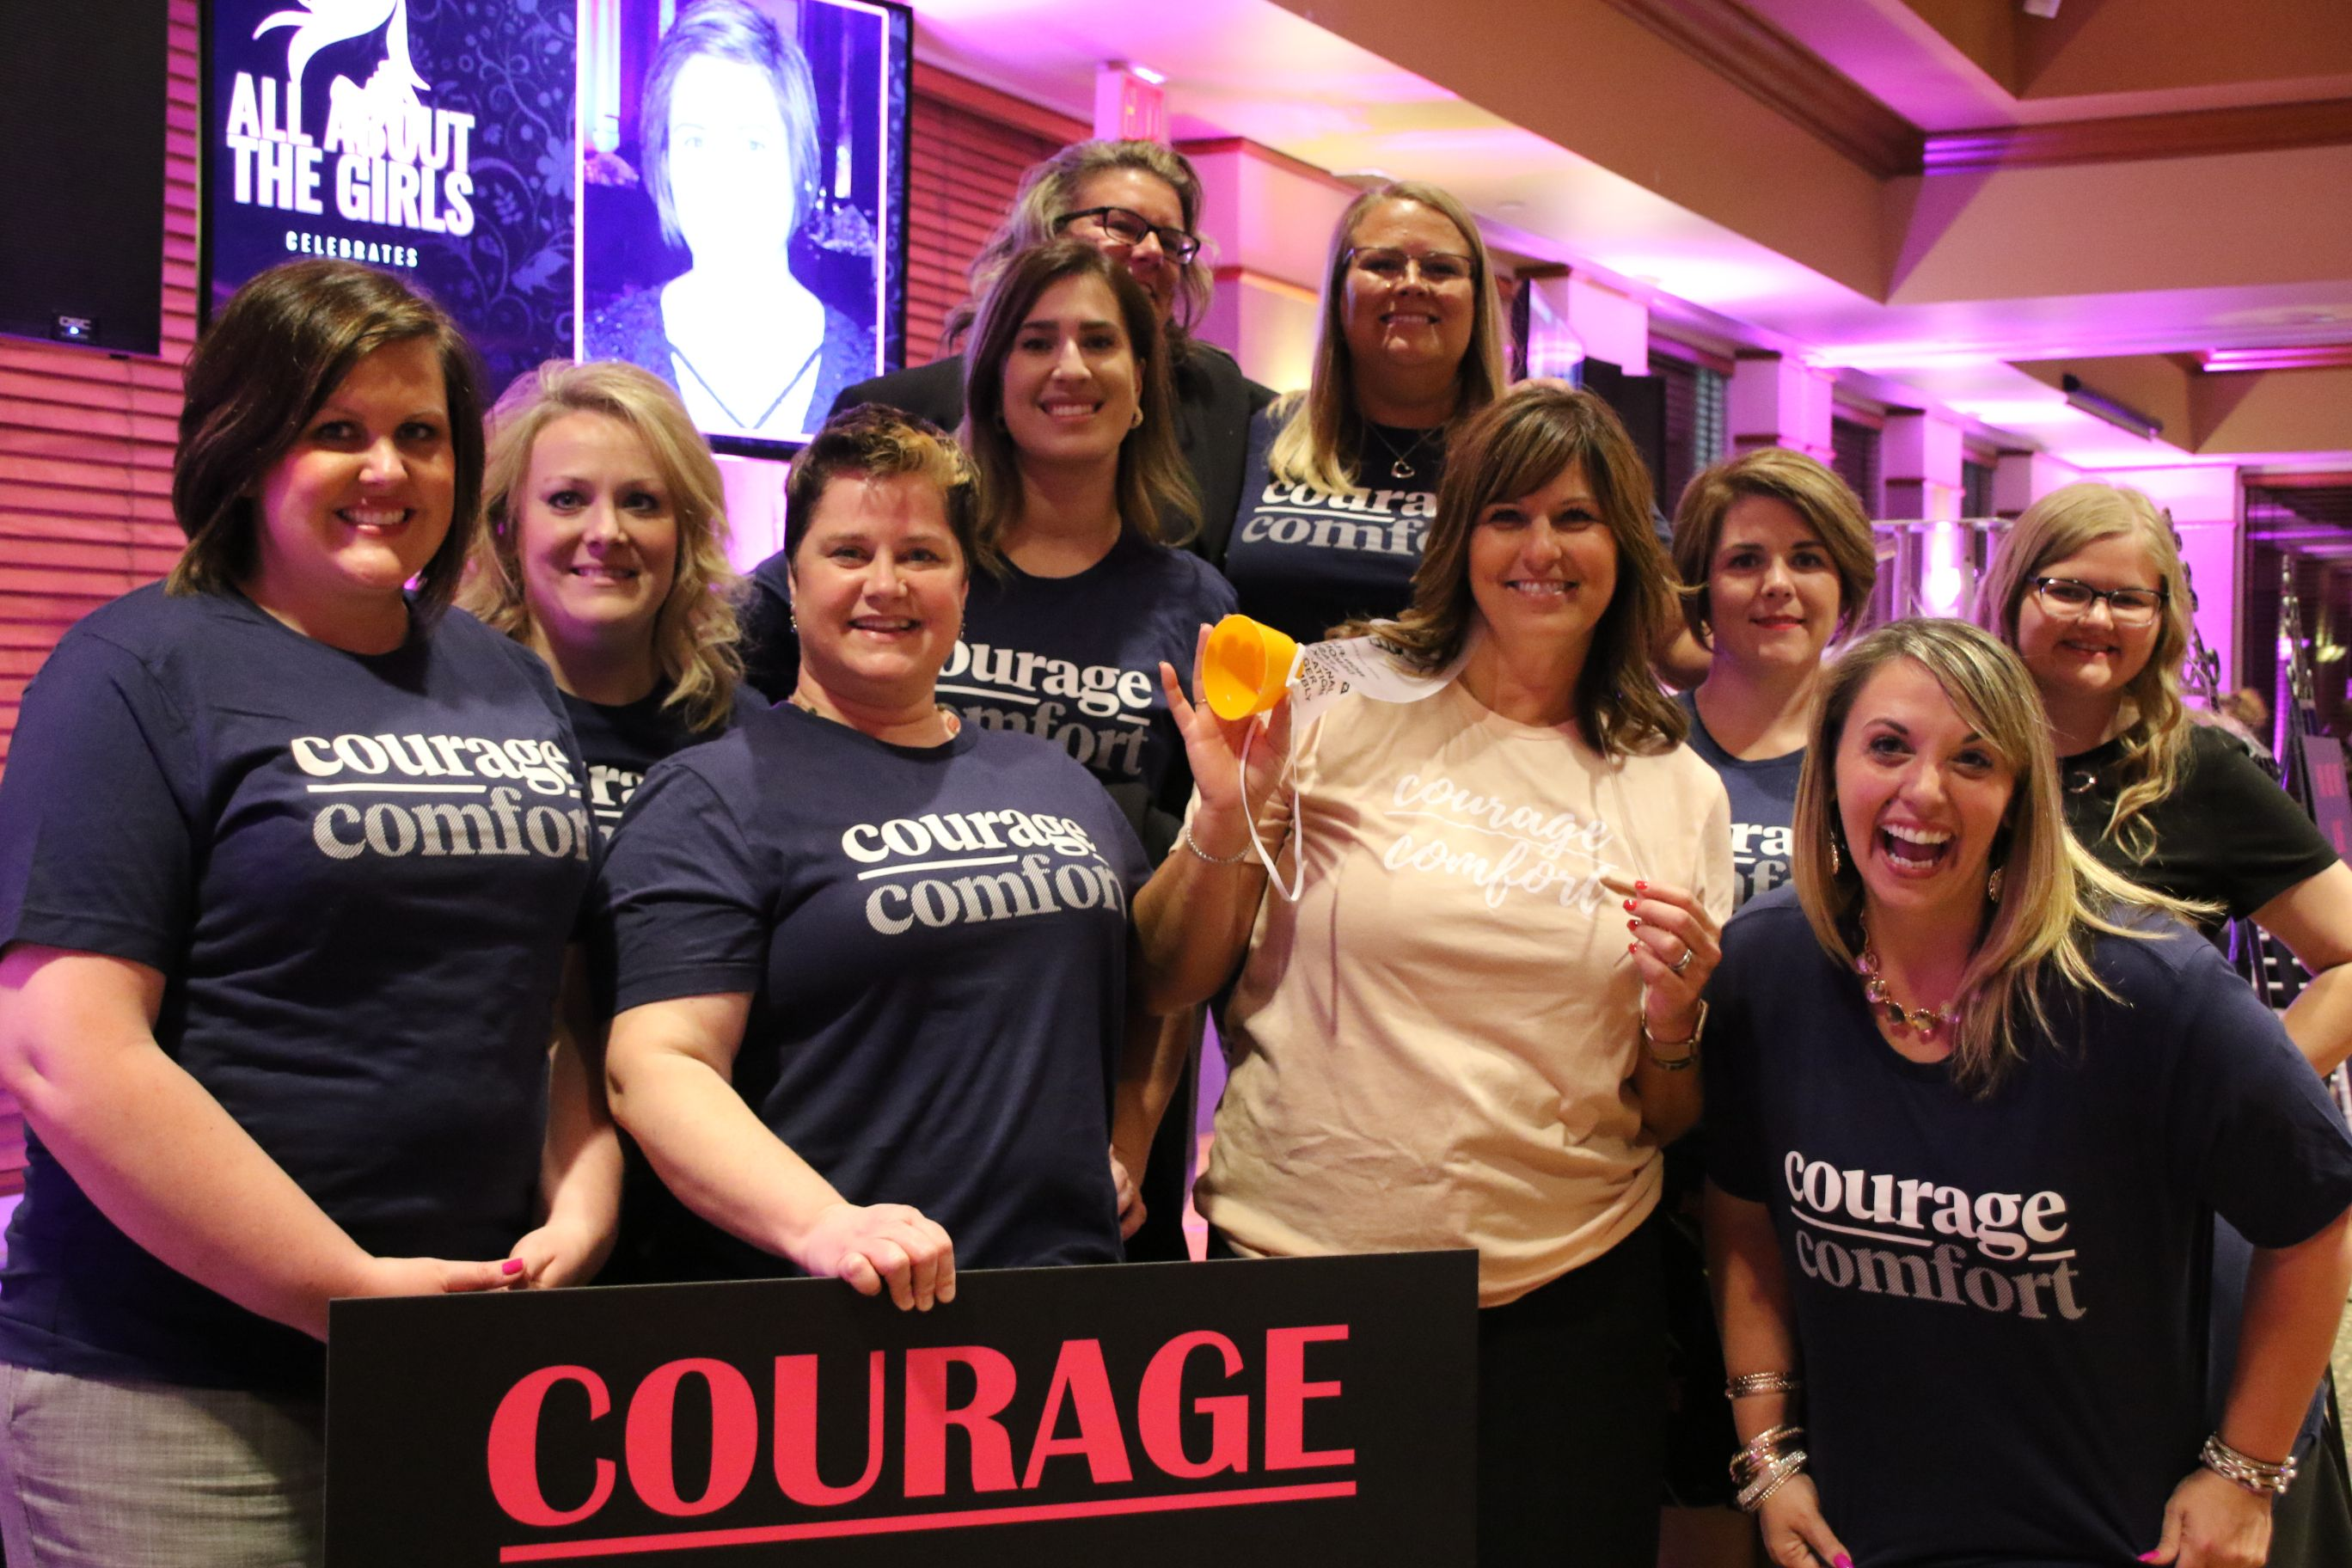 Speakers celebrate Courage Over Comfort at All About the Girls Part 5